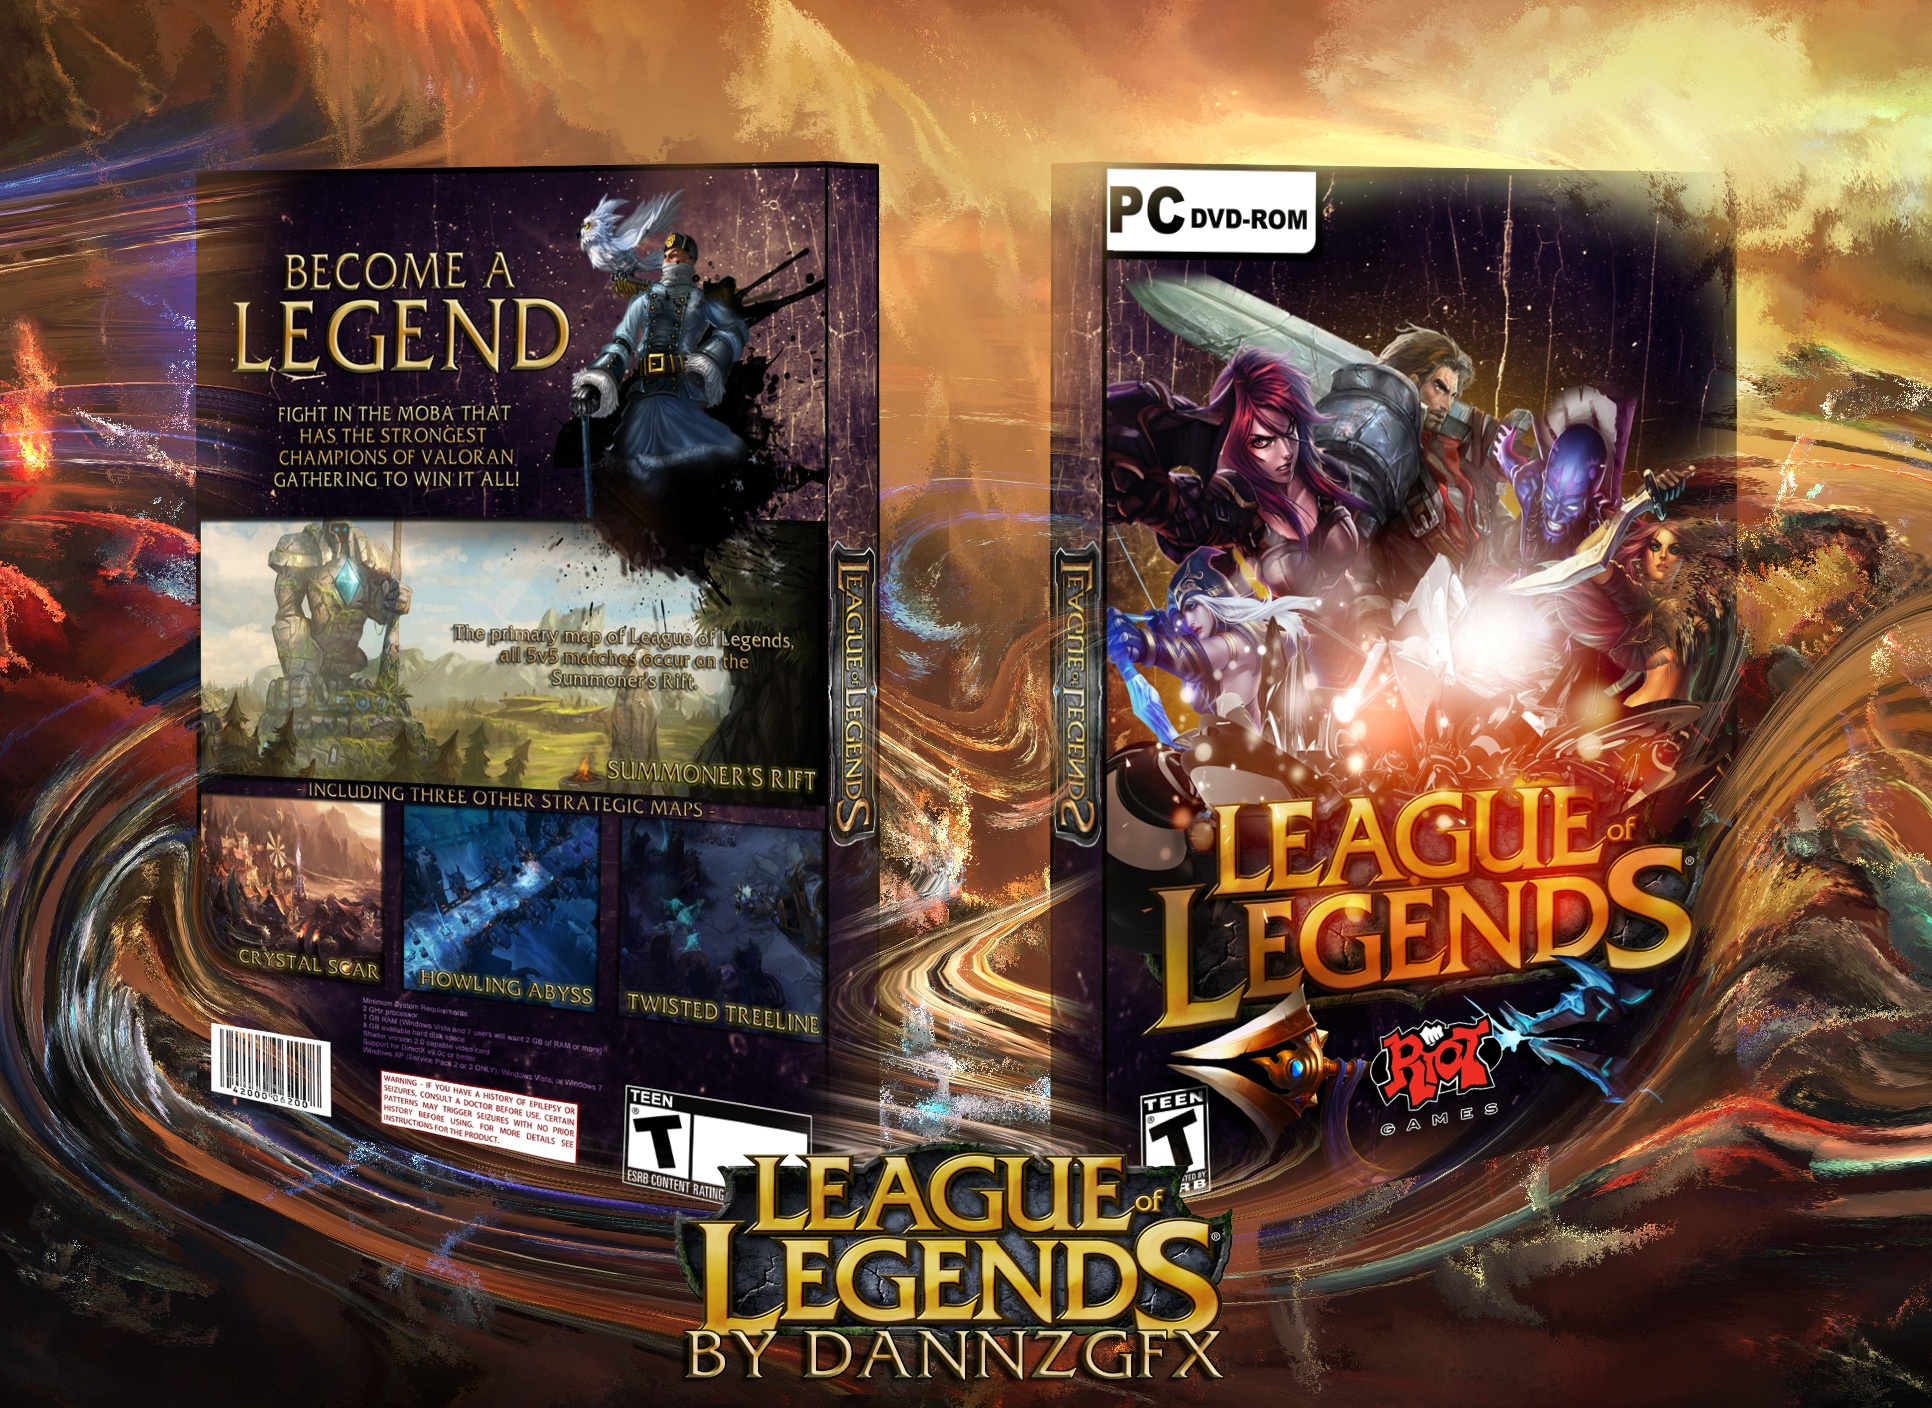 League of Legends box cover